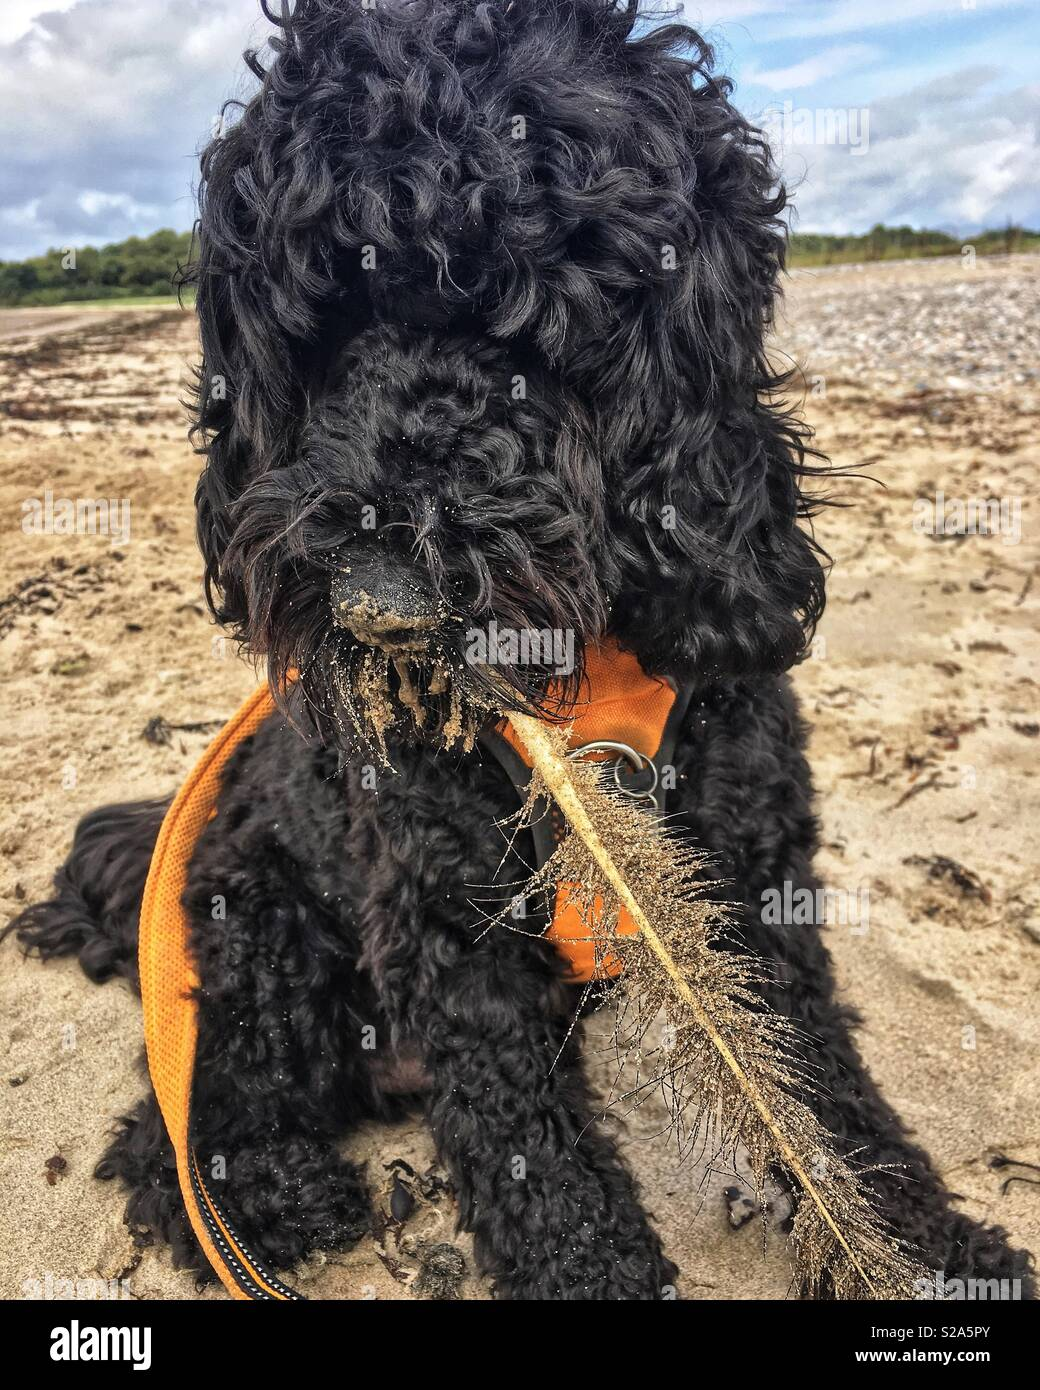 Cockapoo Dog with feather - Stock Image